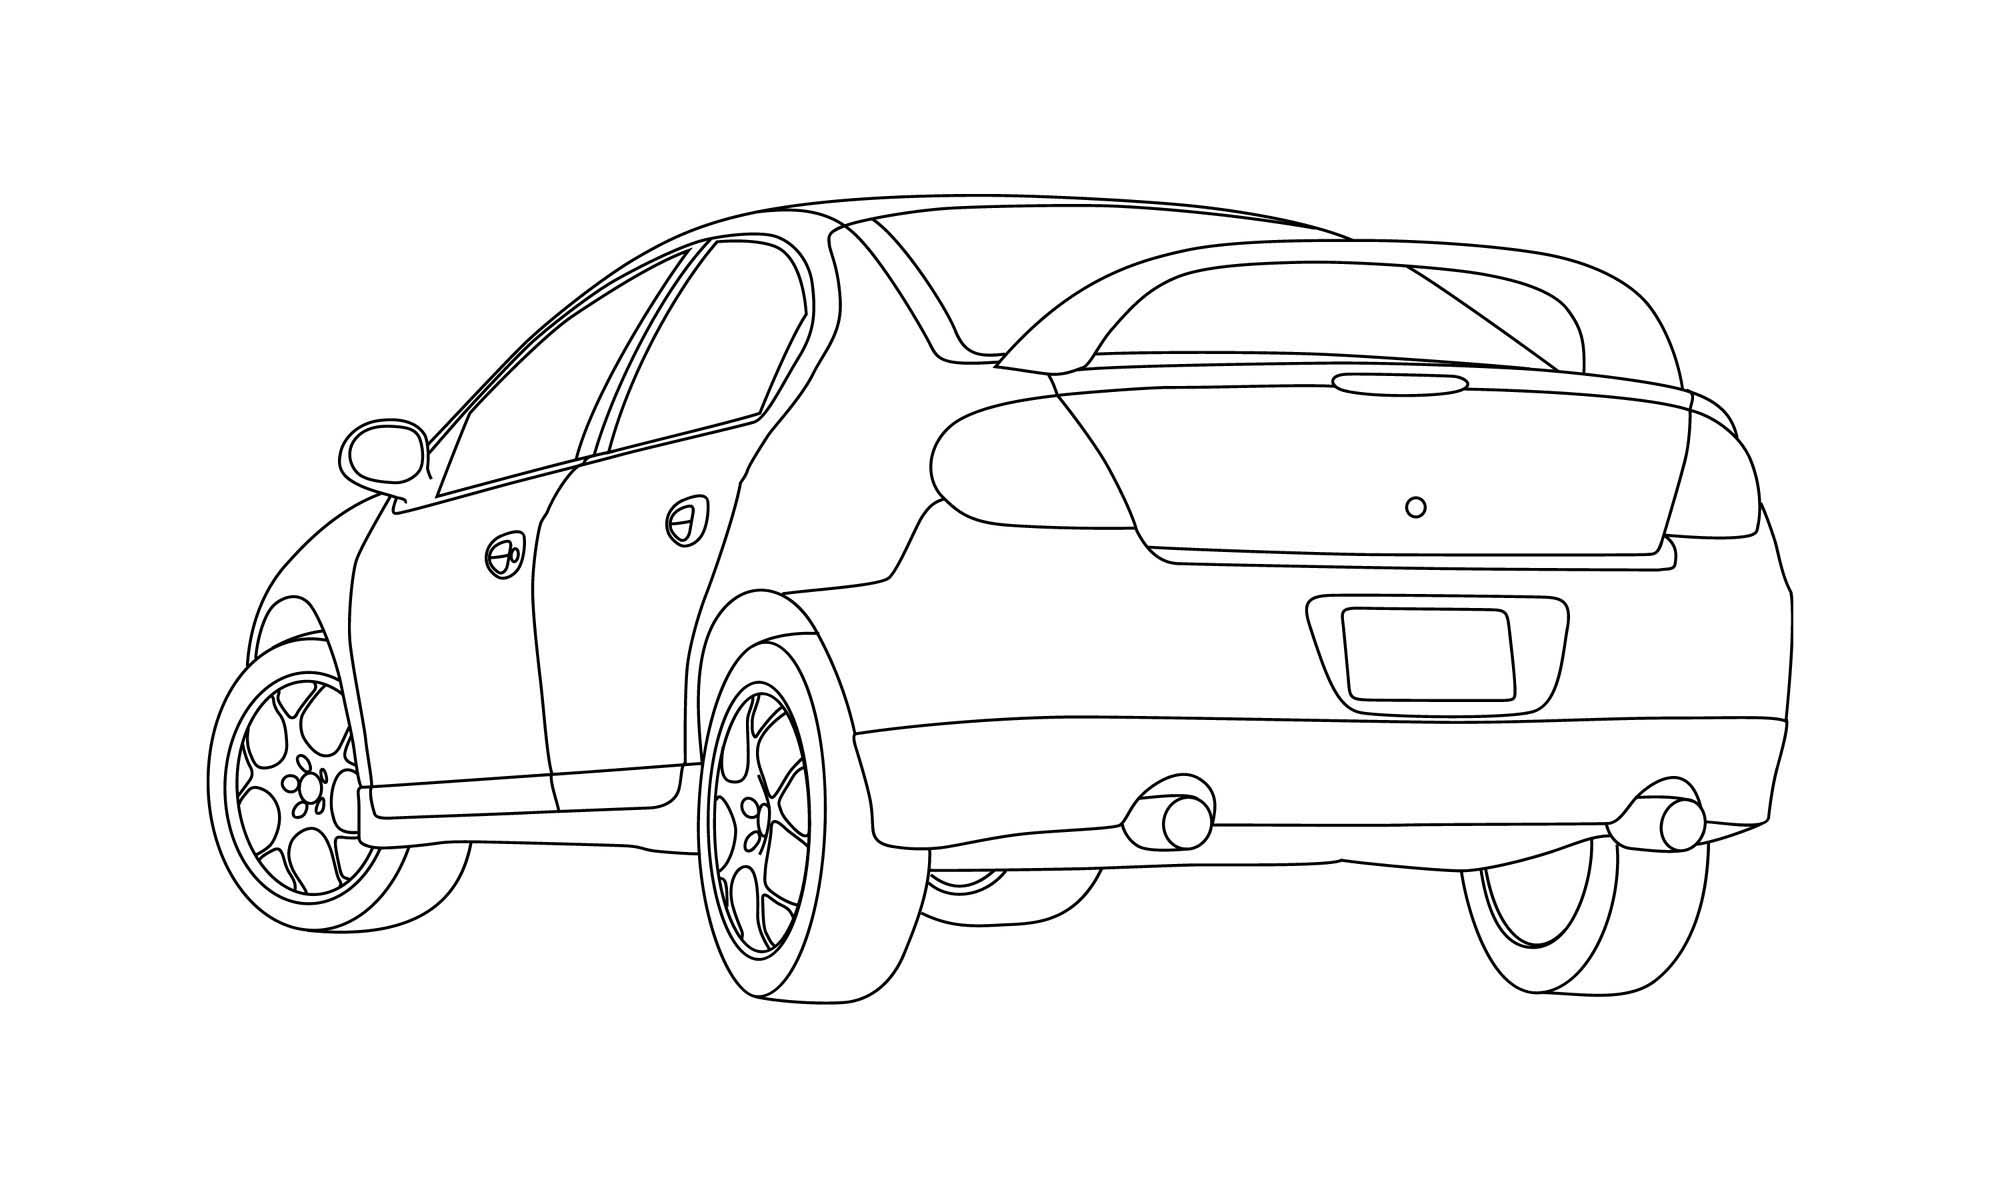 Srt 4 Line Drawing